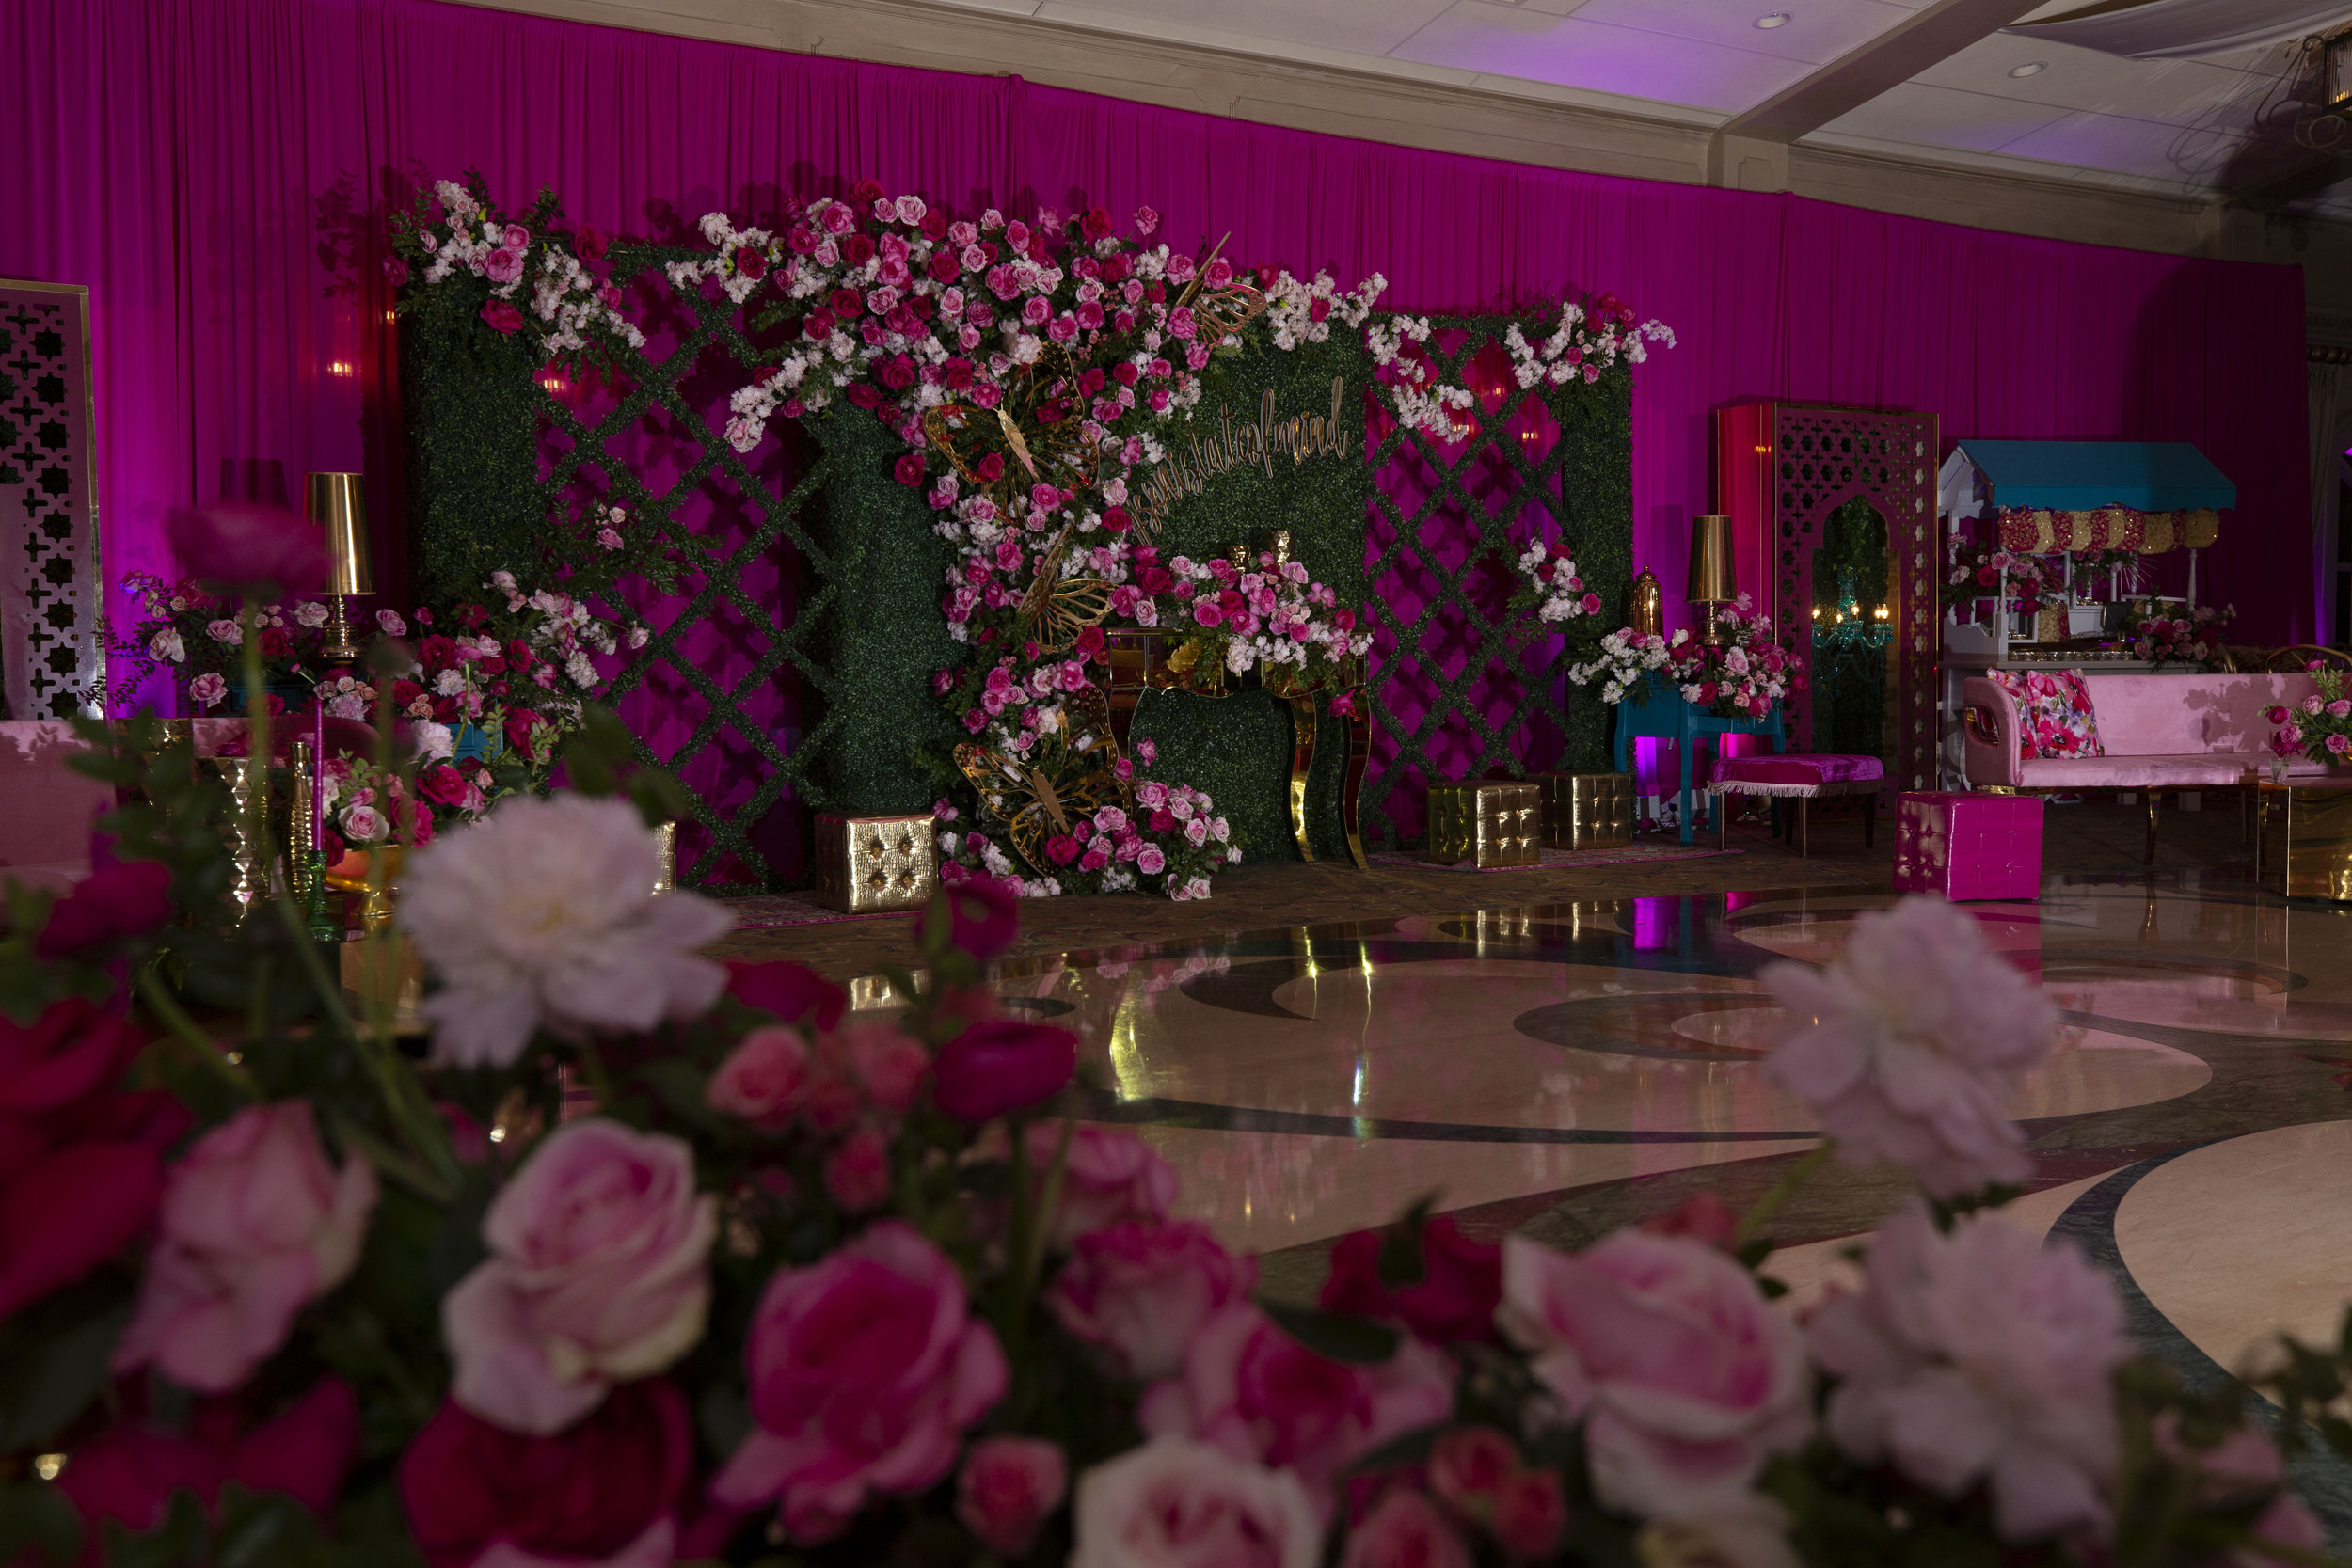 INDIAN WEDDING VENUE 2.JPG